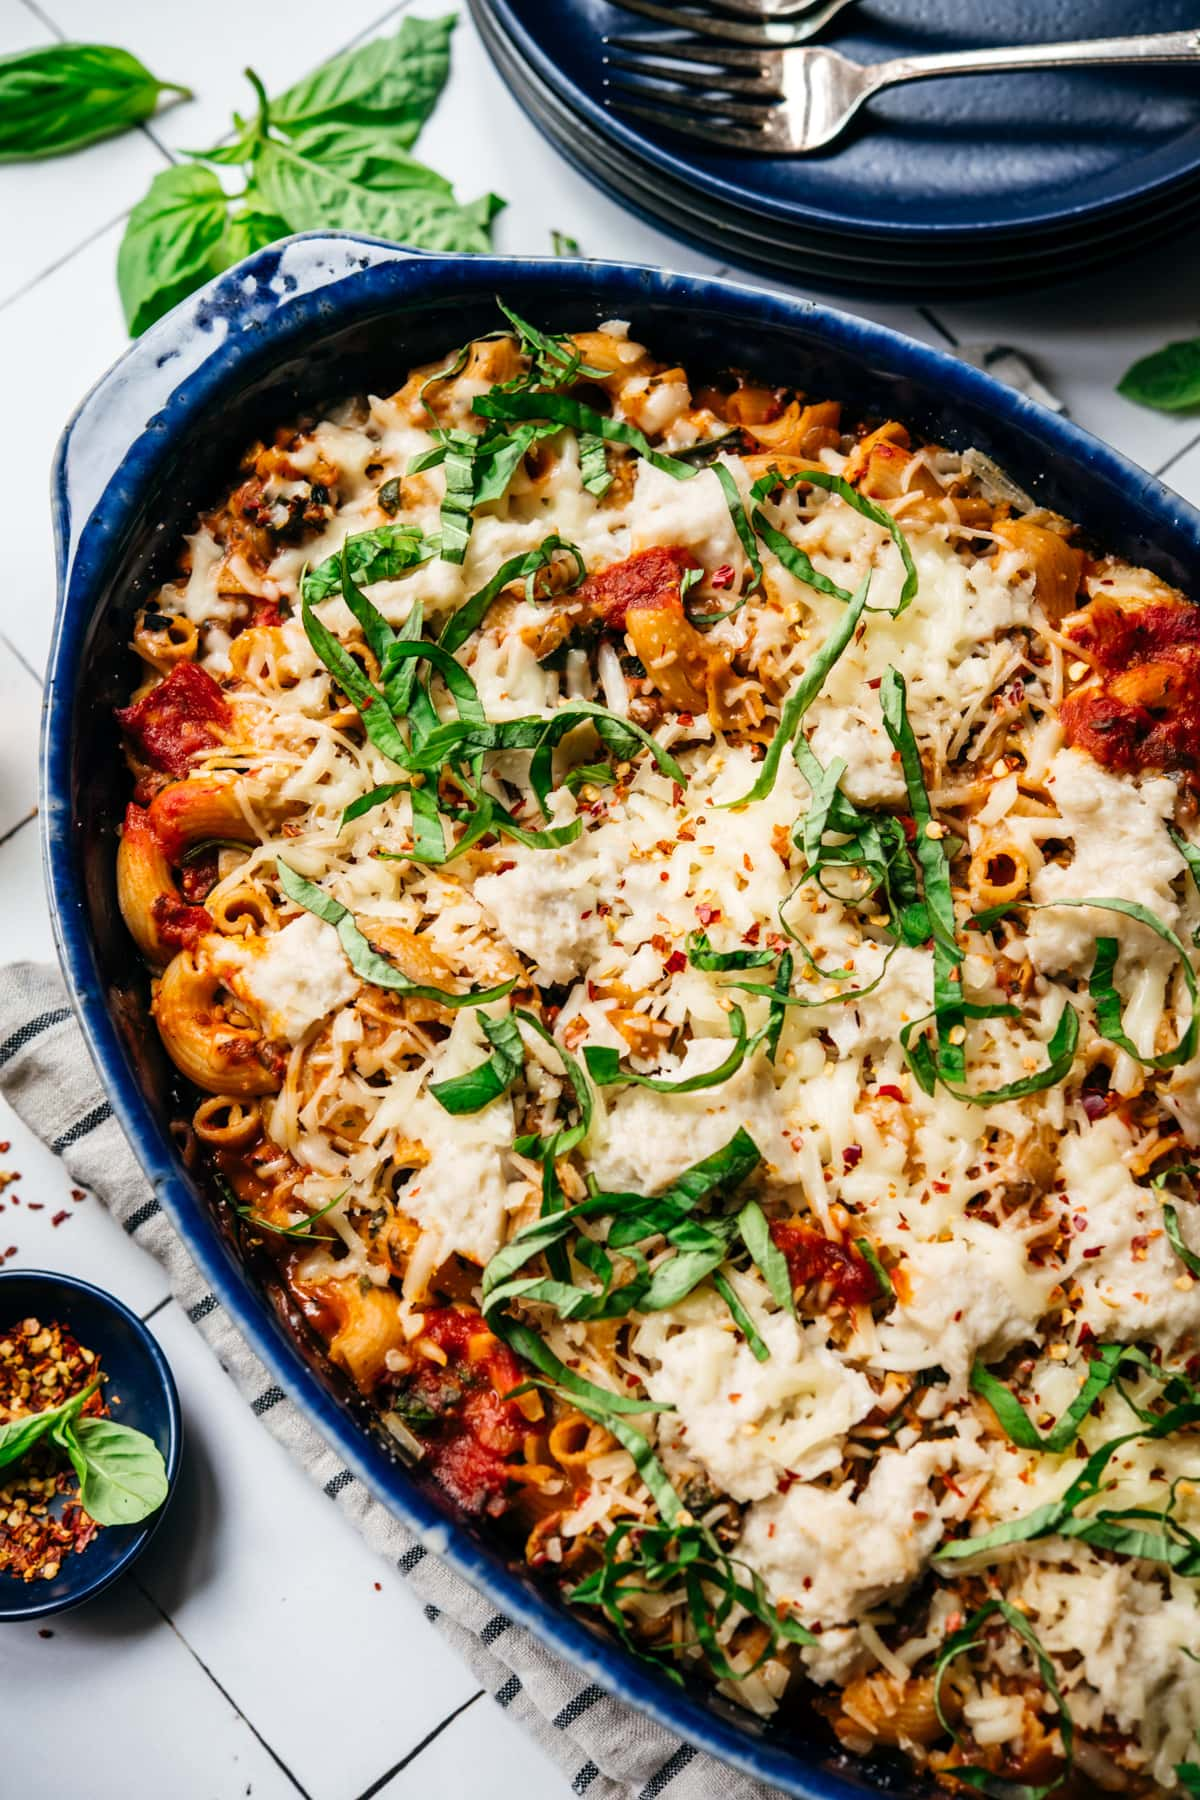 close up view of vegan pasta bake topped with cheese and basil in a blue baking dish.